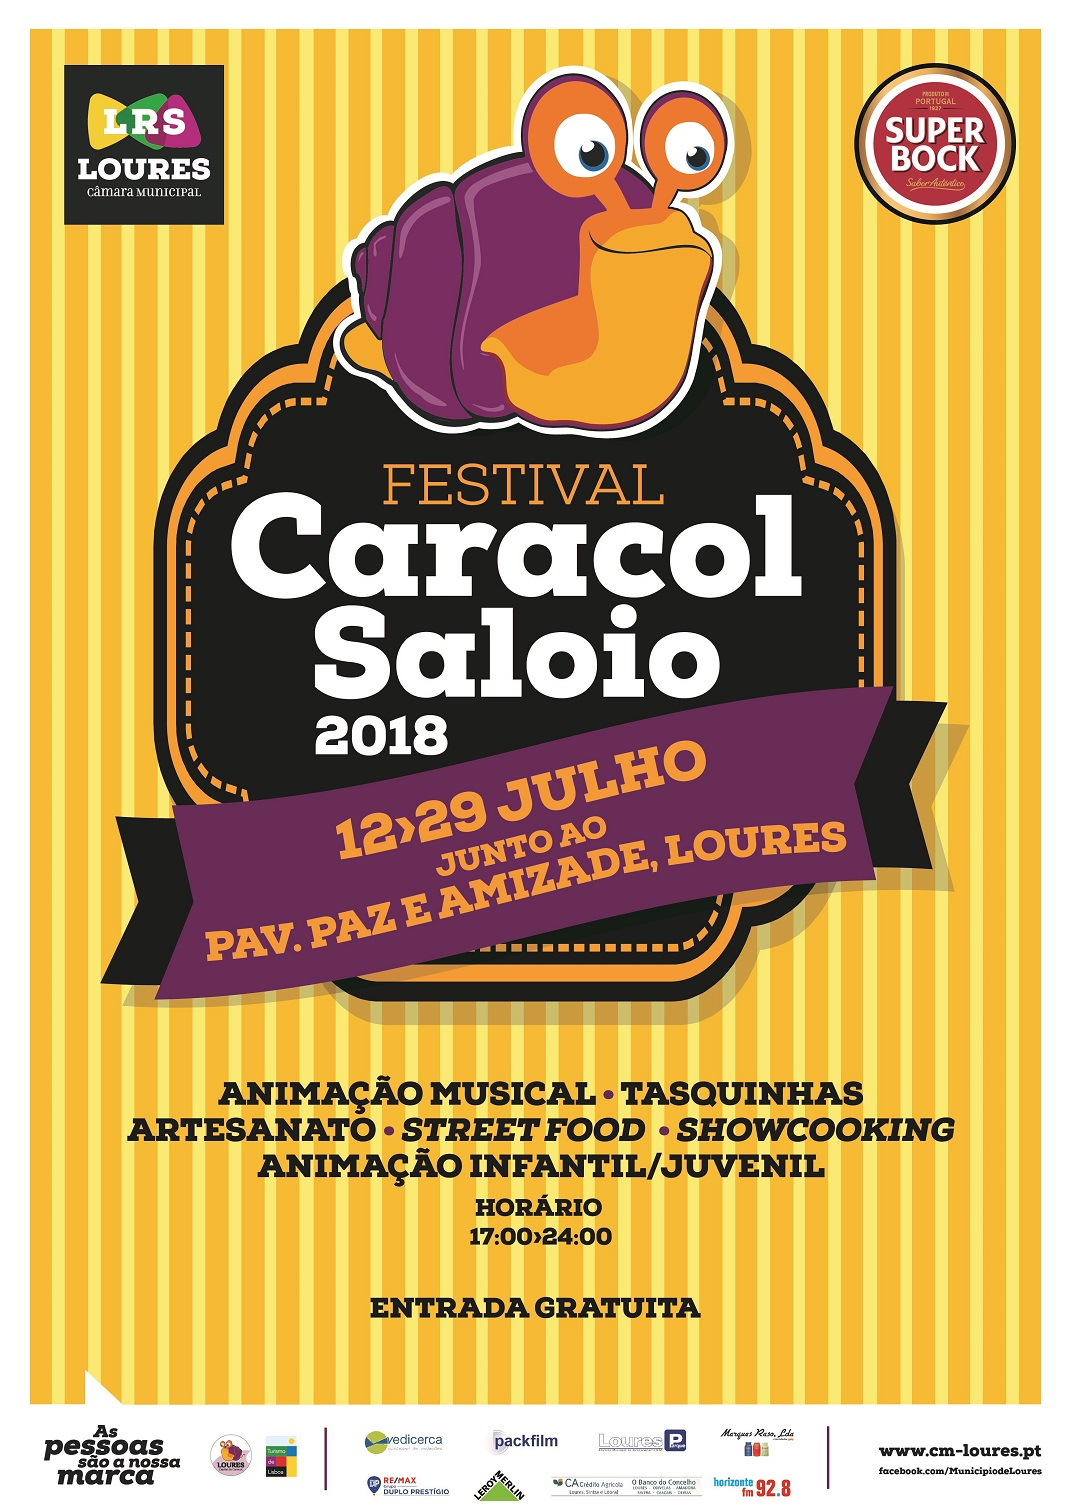 Festival do Caracol Saloio 2018